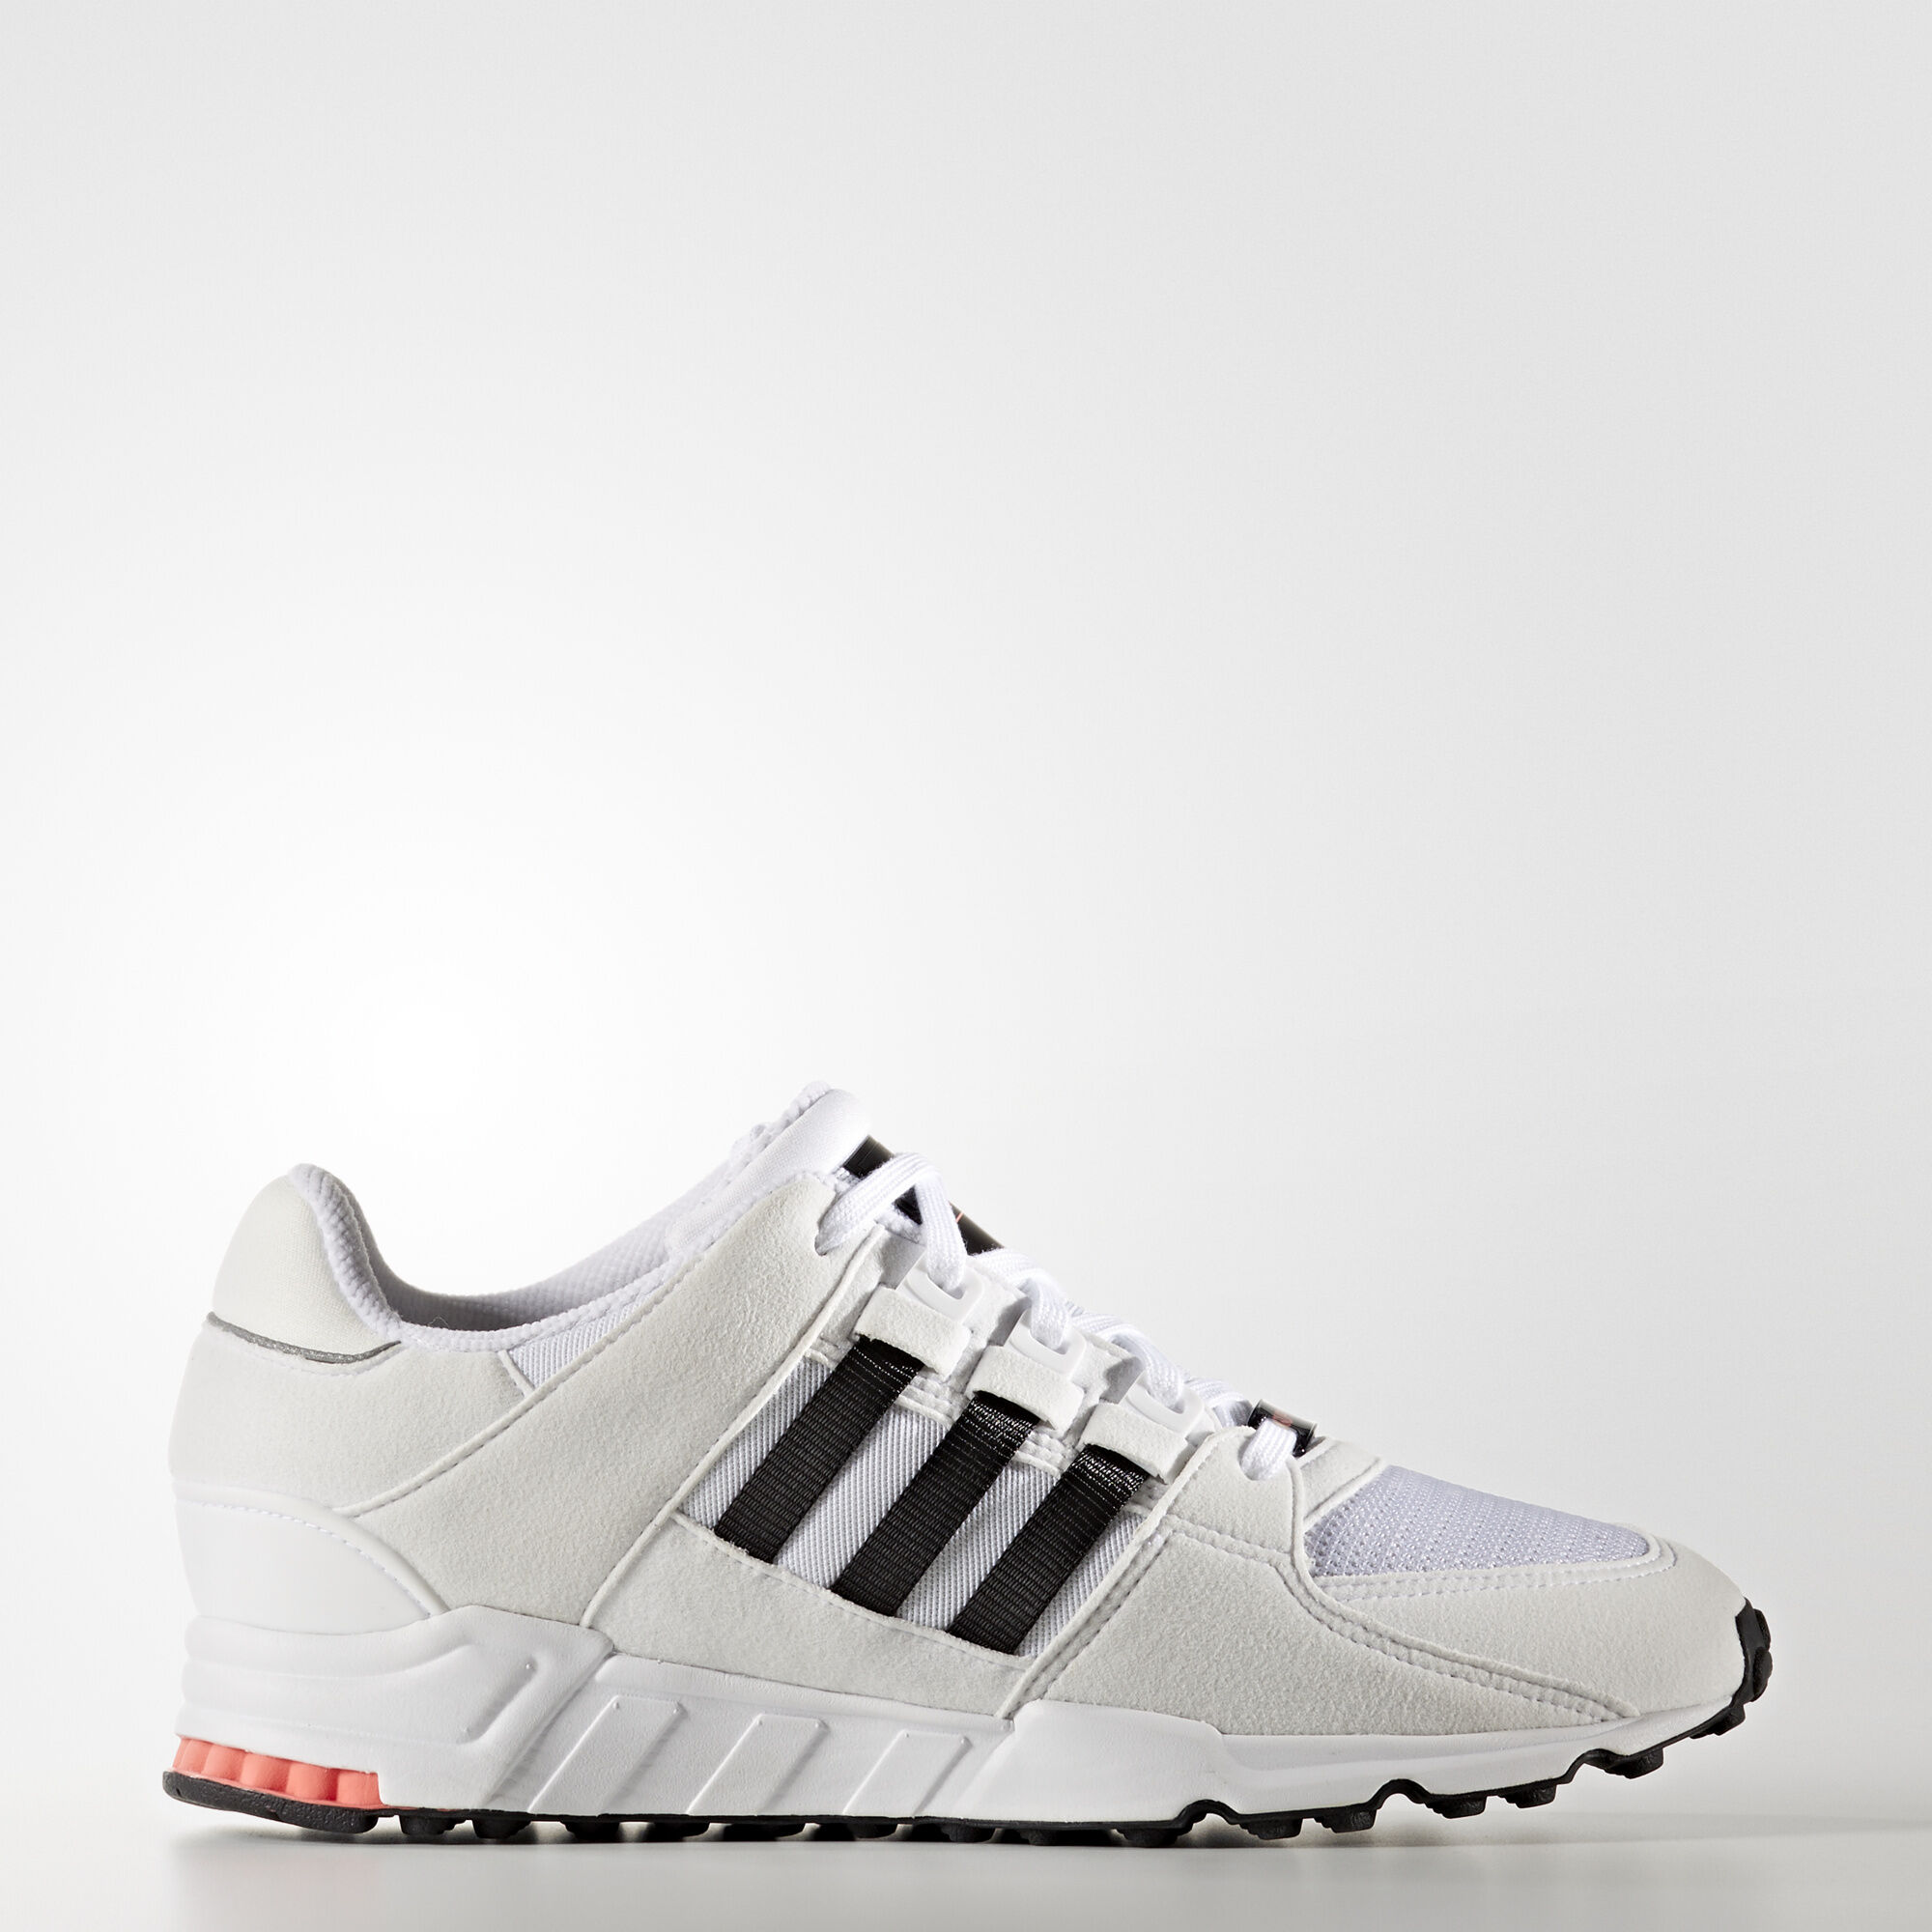 adidas Originals Traces the Origins of the EQT Line in New Video